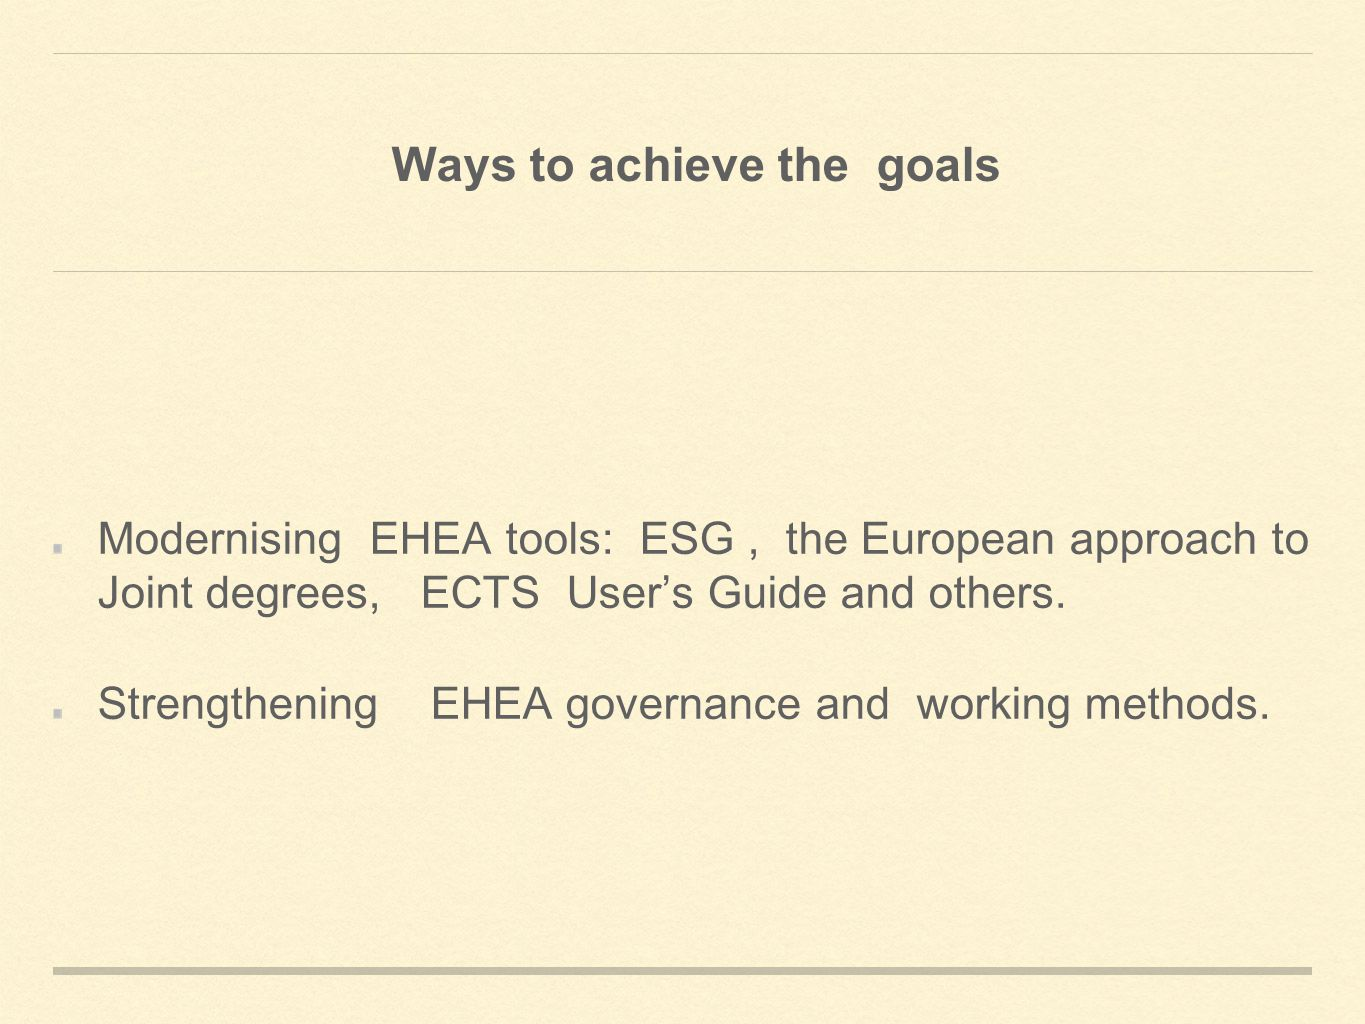 Ways to achieve the goals Modernising EHEA tools: ESG, the European approach to Joint degrees, ECTS User's Guide and others.